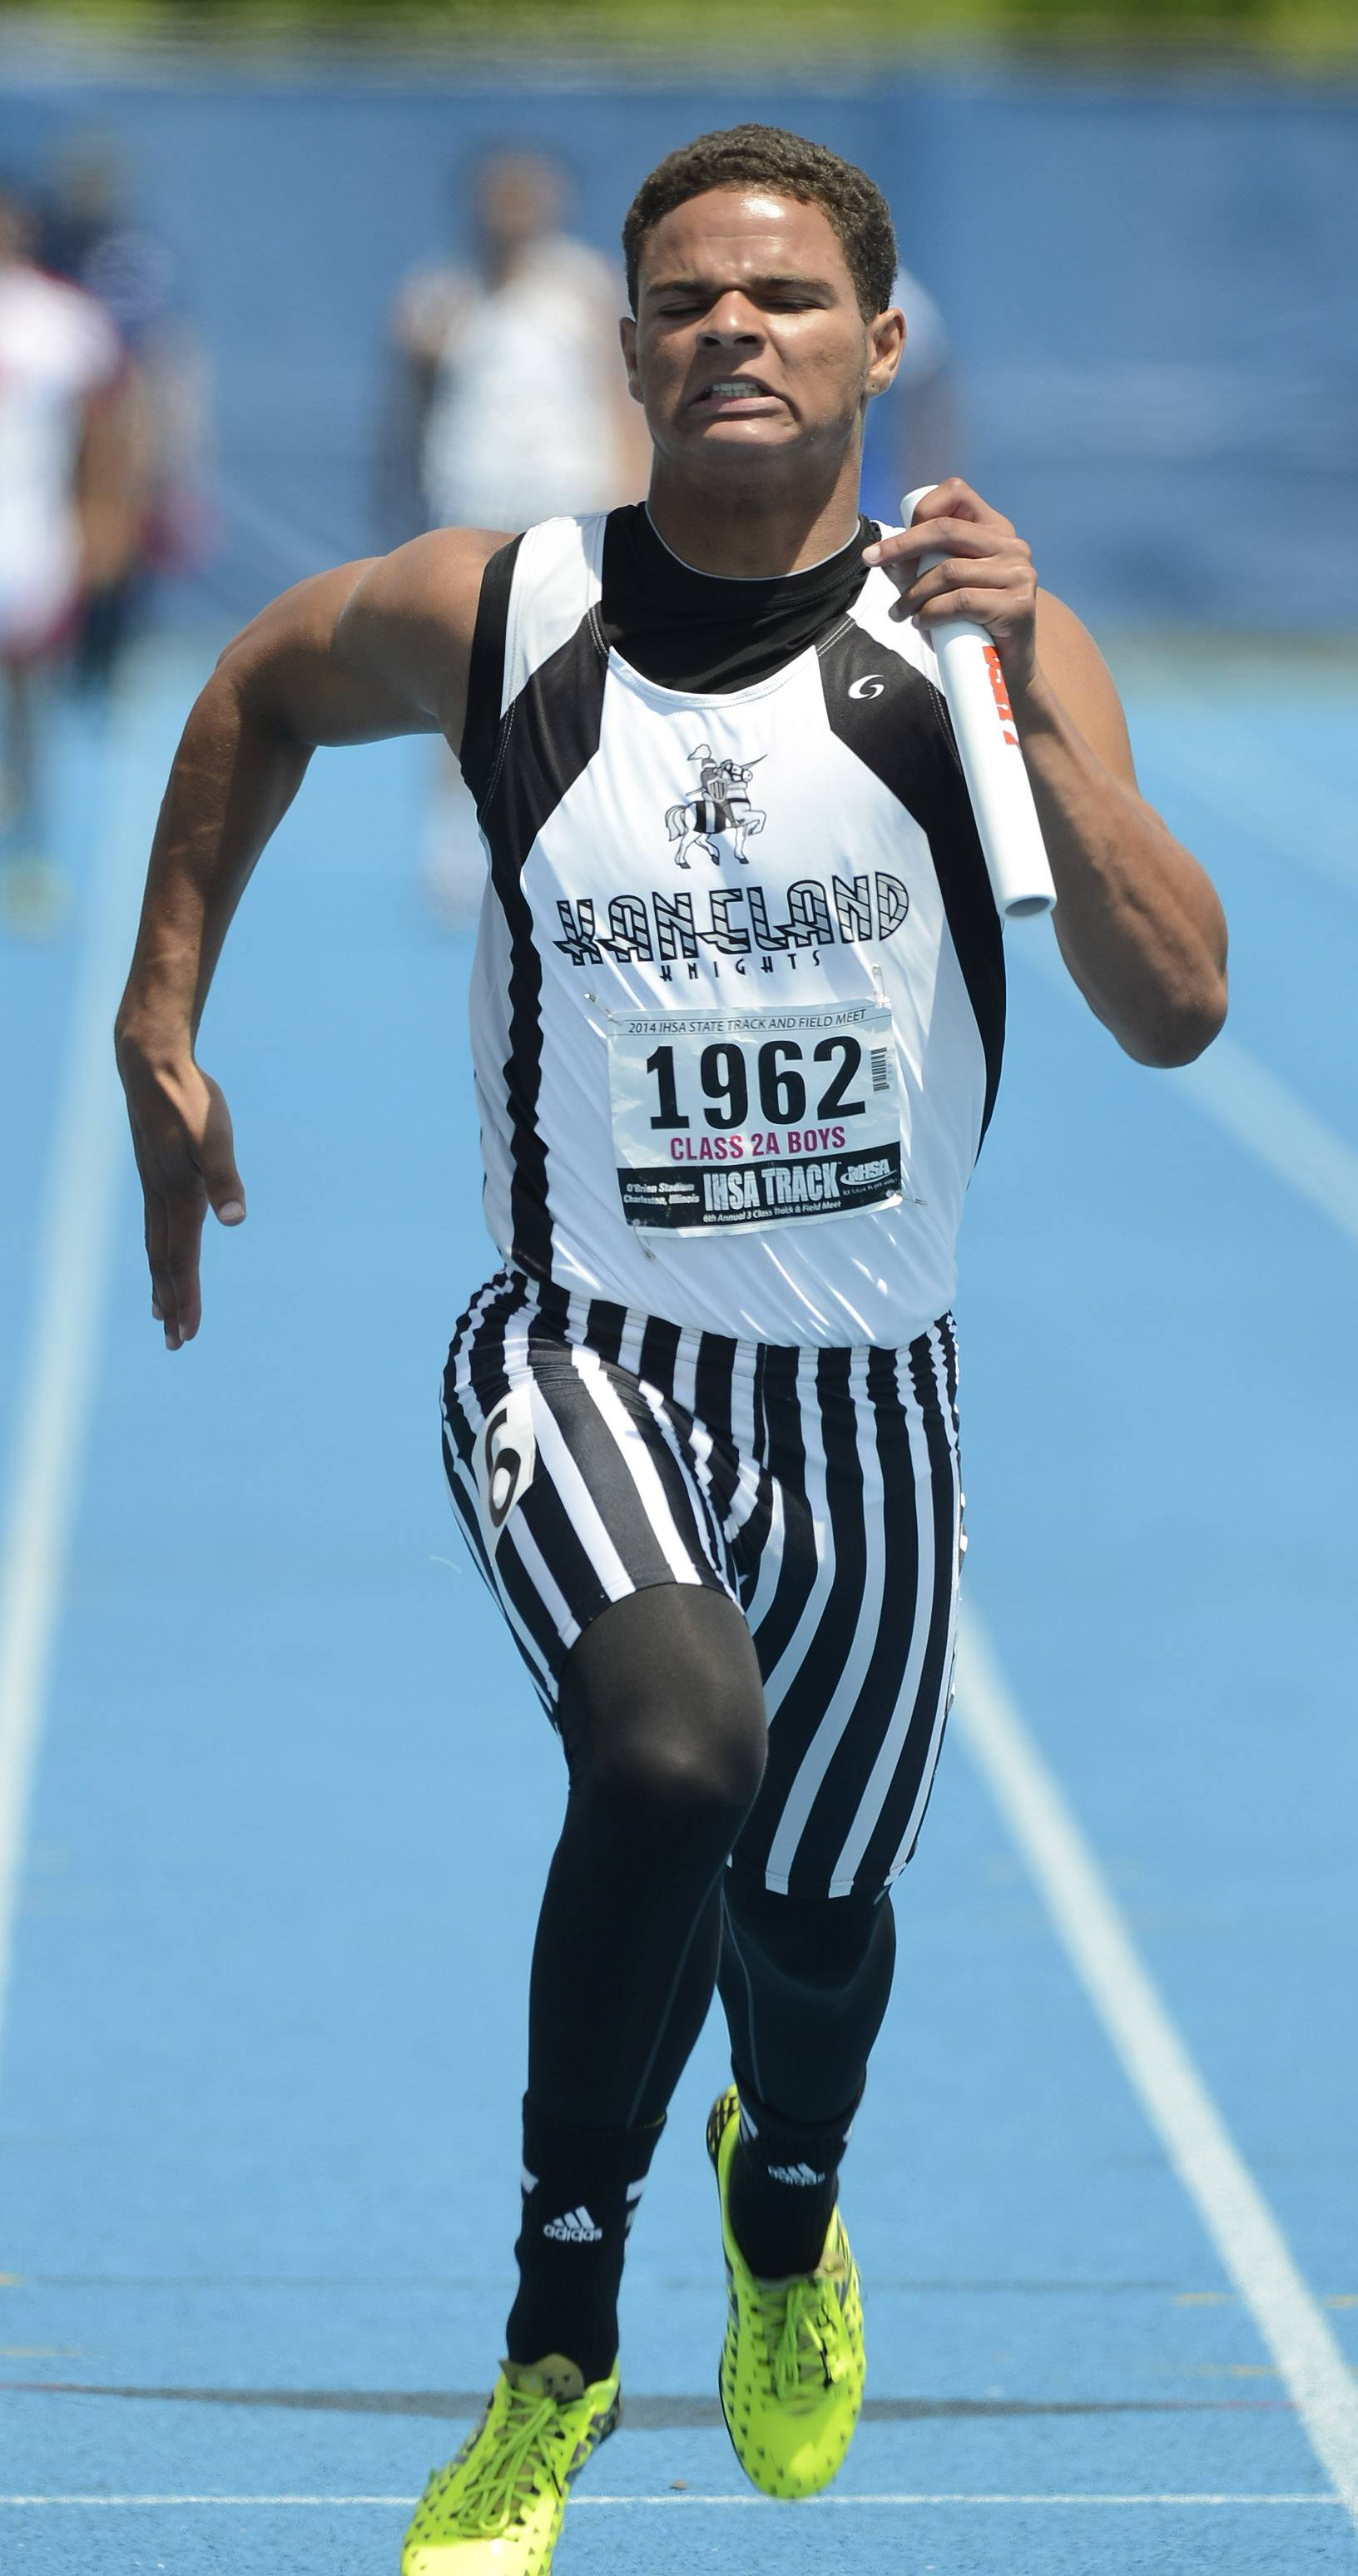 Kaneland's Issac Swithers crosses the finish line for his team in the 4x100-meter relay during the boys class 2A state track and field finals in Charleston Saturday.